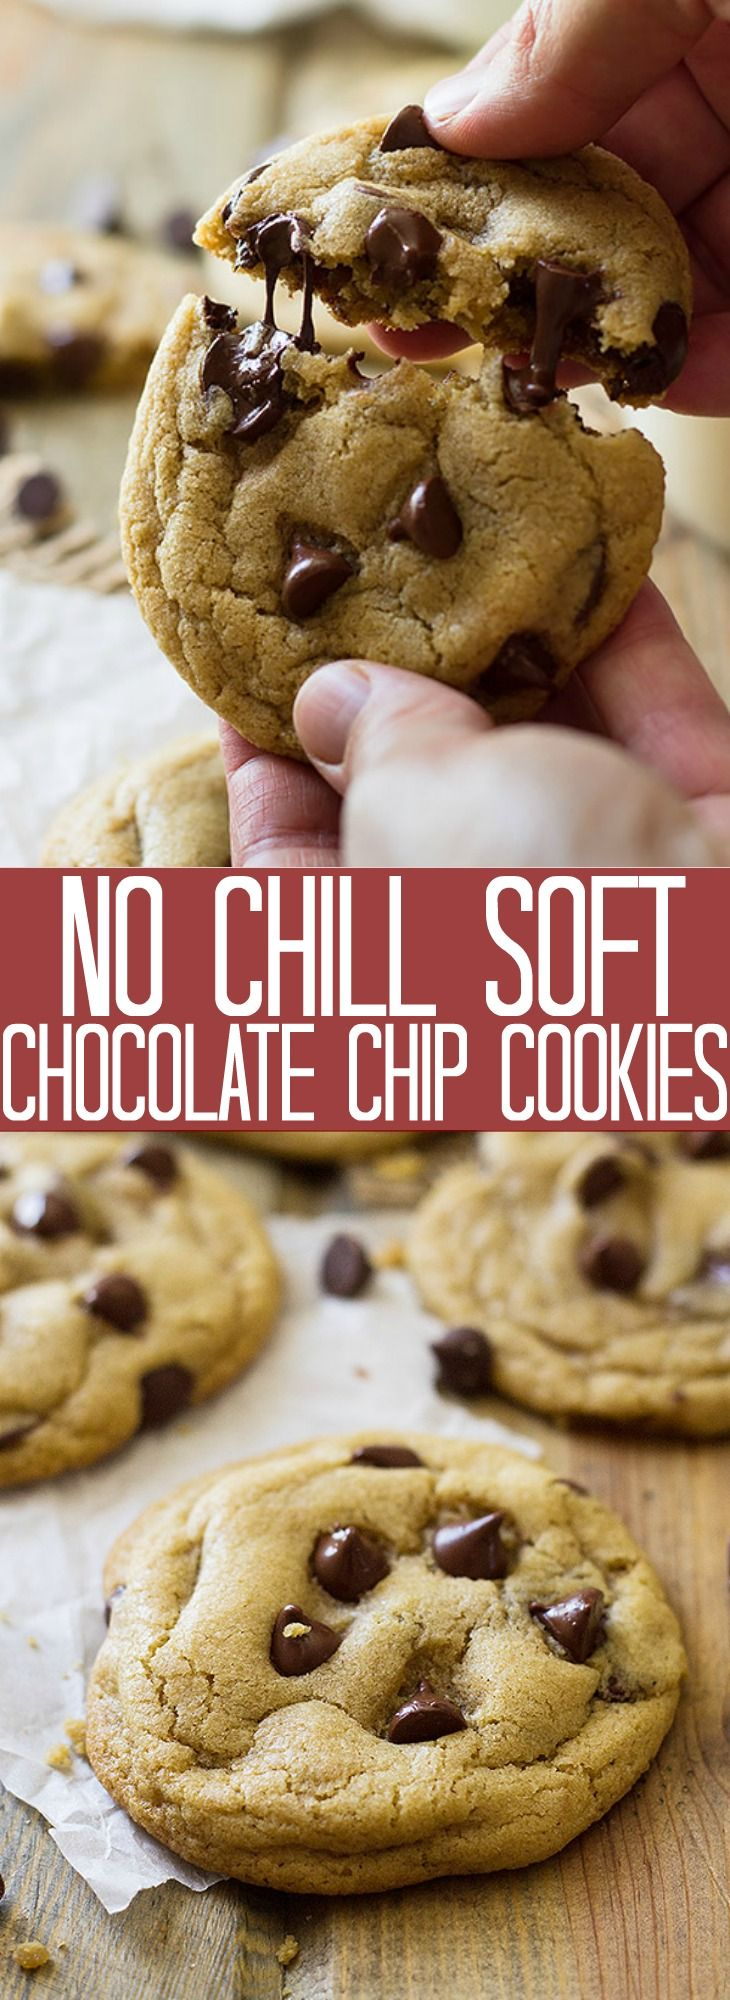 Best 25+ Chocolate chip cookies ideas only on Pinterest ...